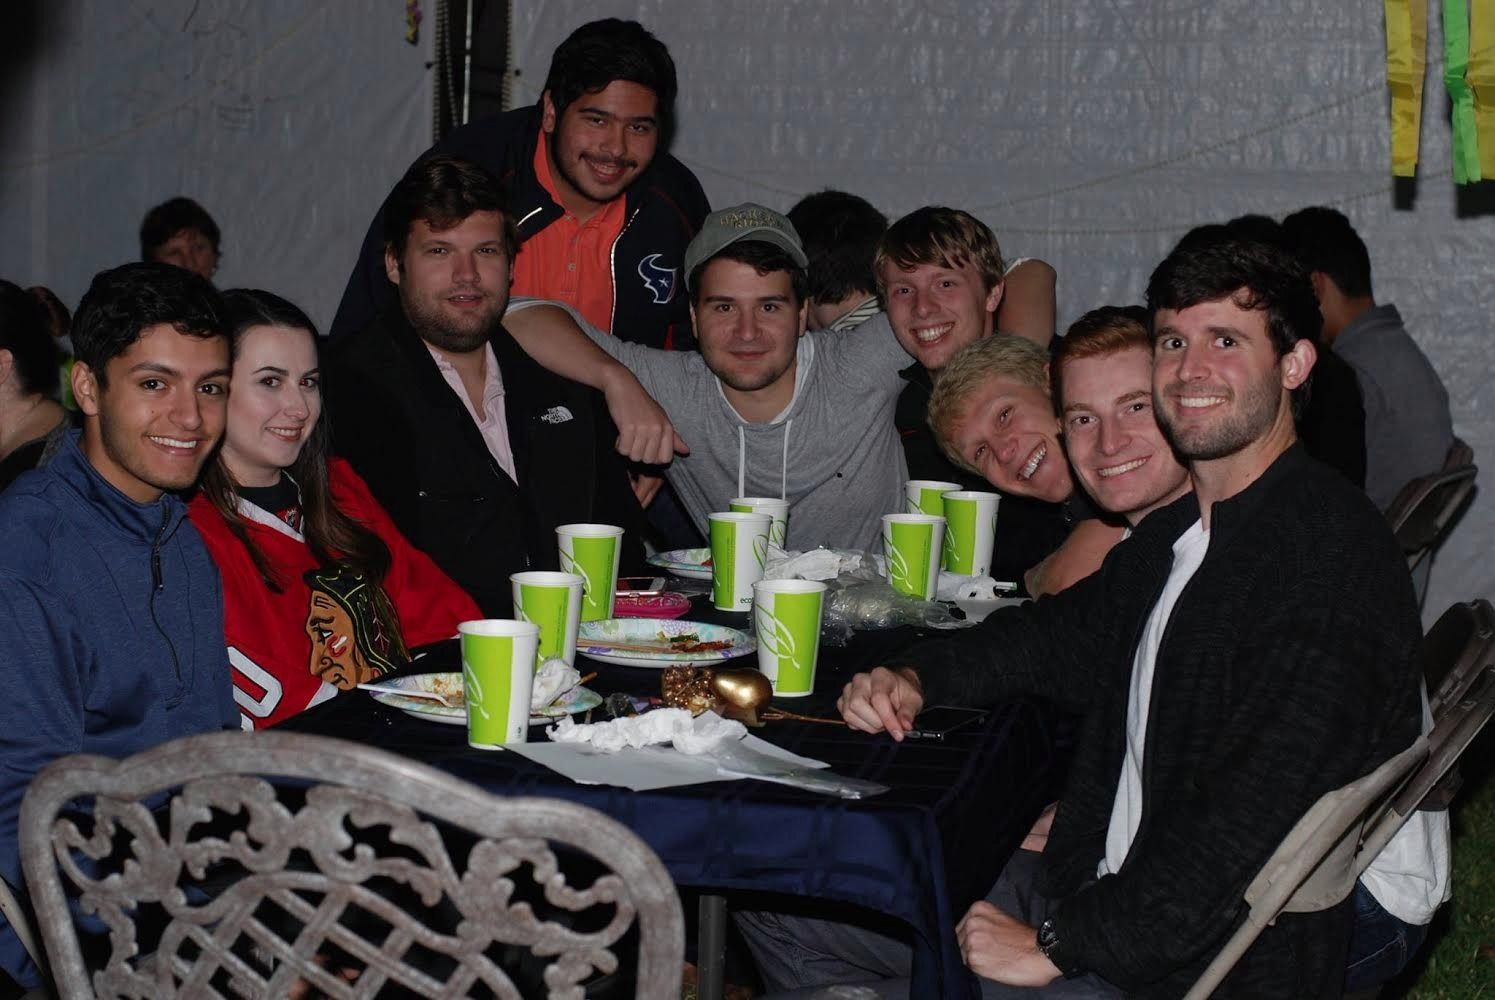 Jewish students at a Southern Methodist University Hillel event.